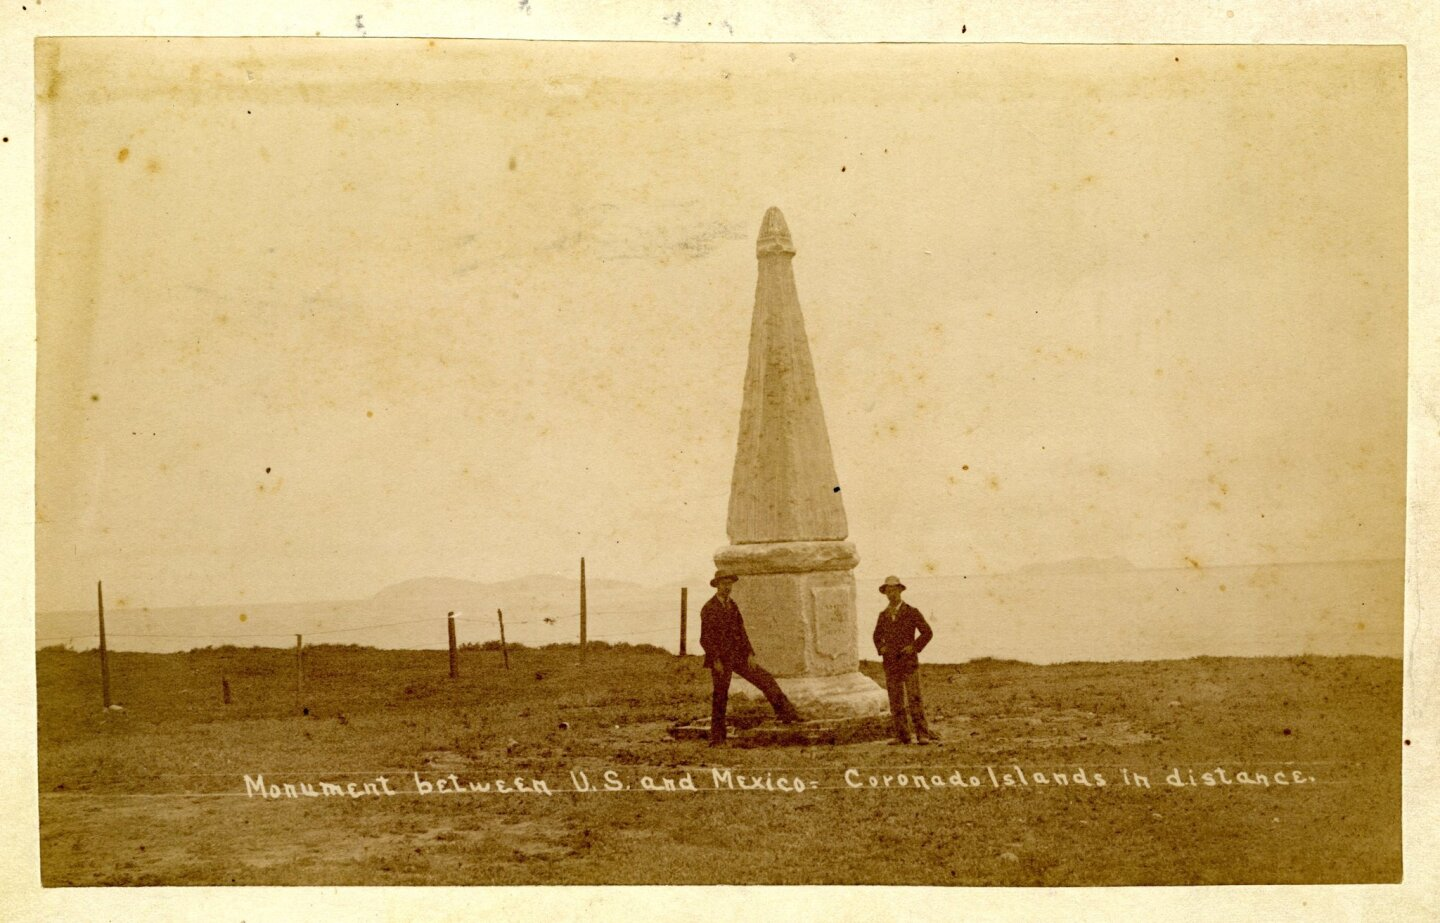 In 1851, a marble monument was erected to mark the border between United States and Mexico.